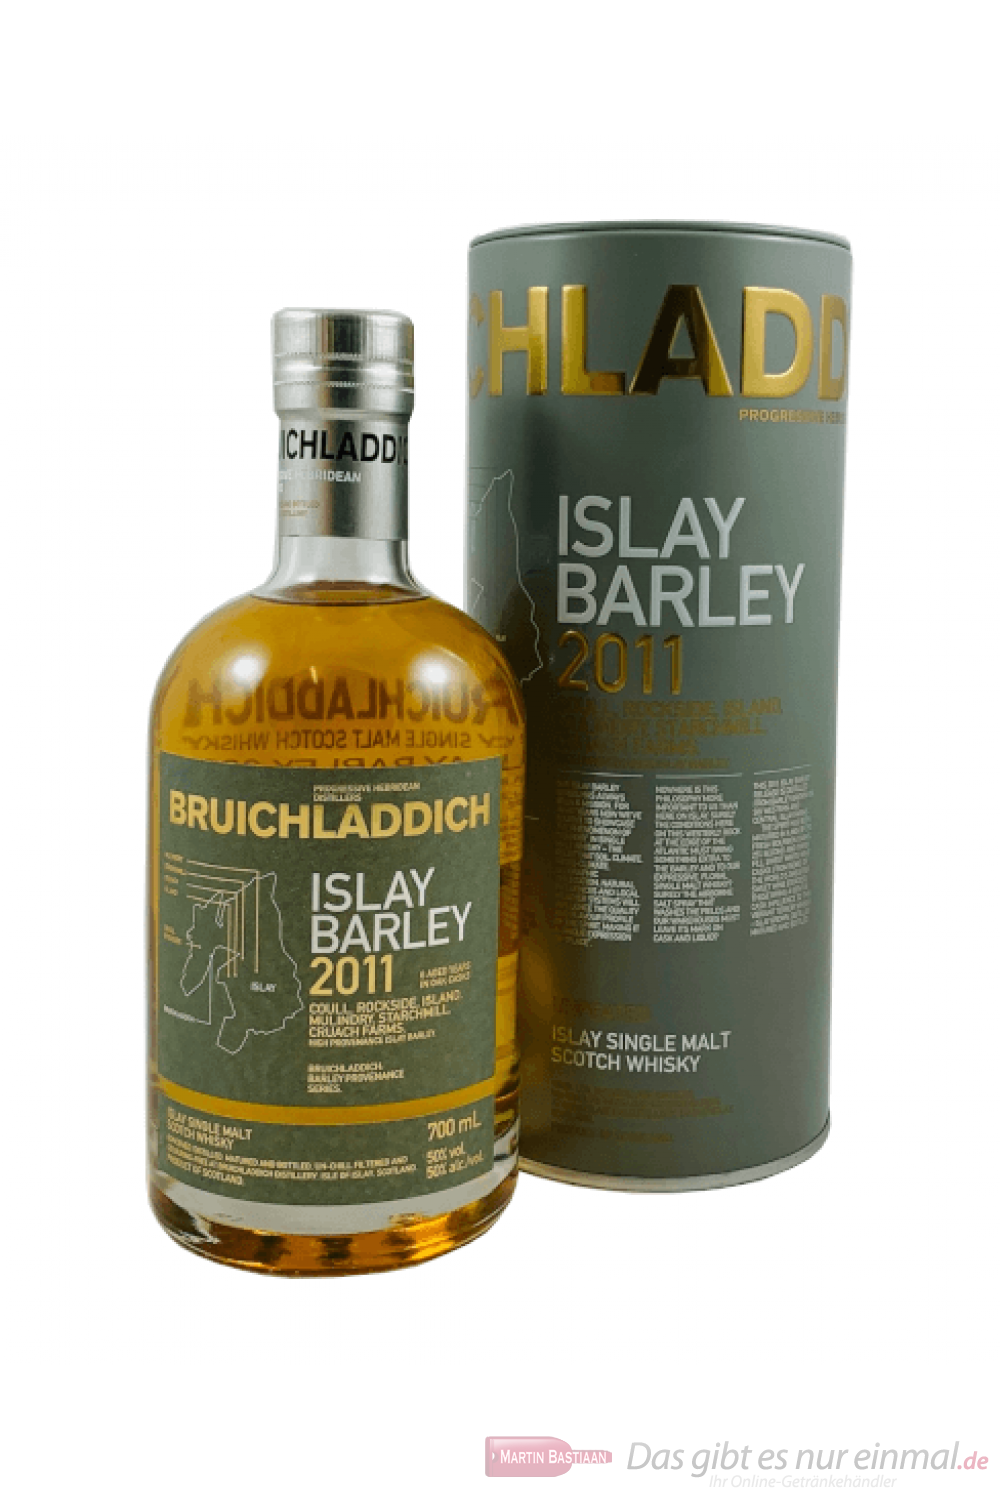 Bruichladdich Islay Barley 2011 Unpeated Single Malt Scotch Whisky 0,7l